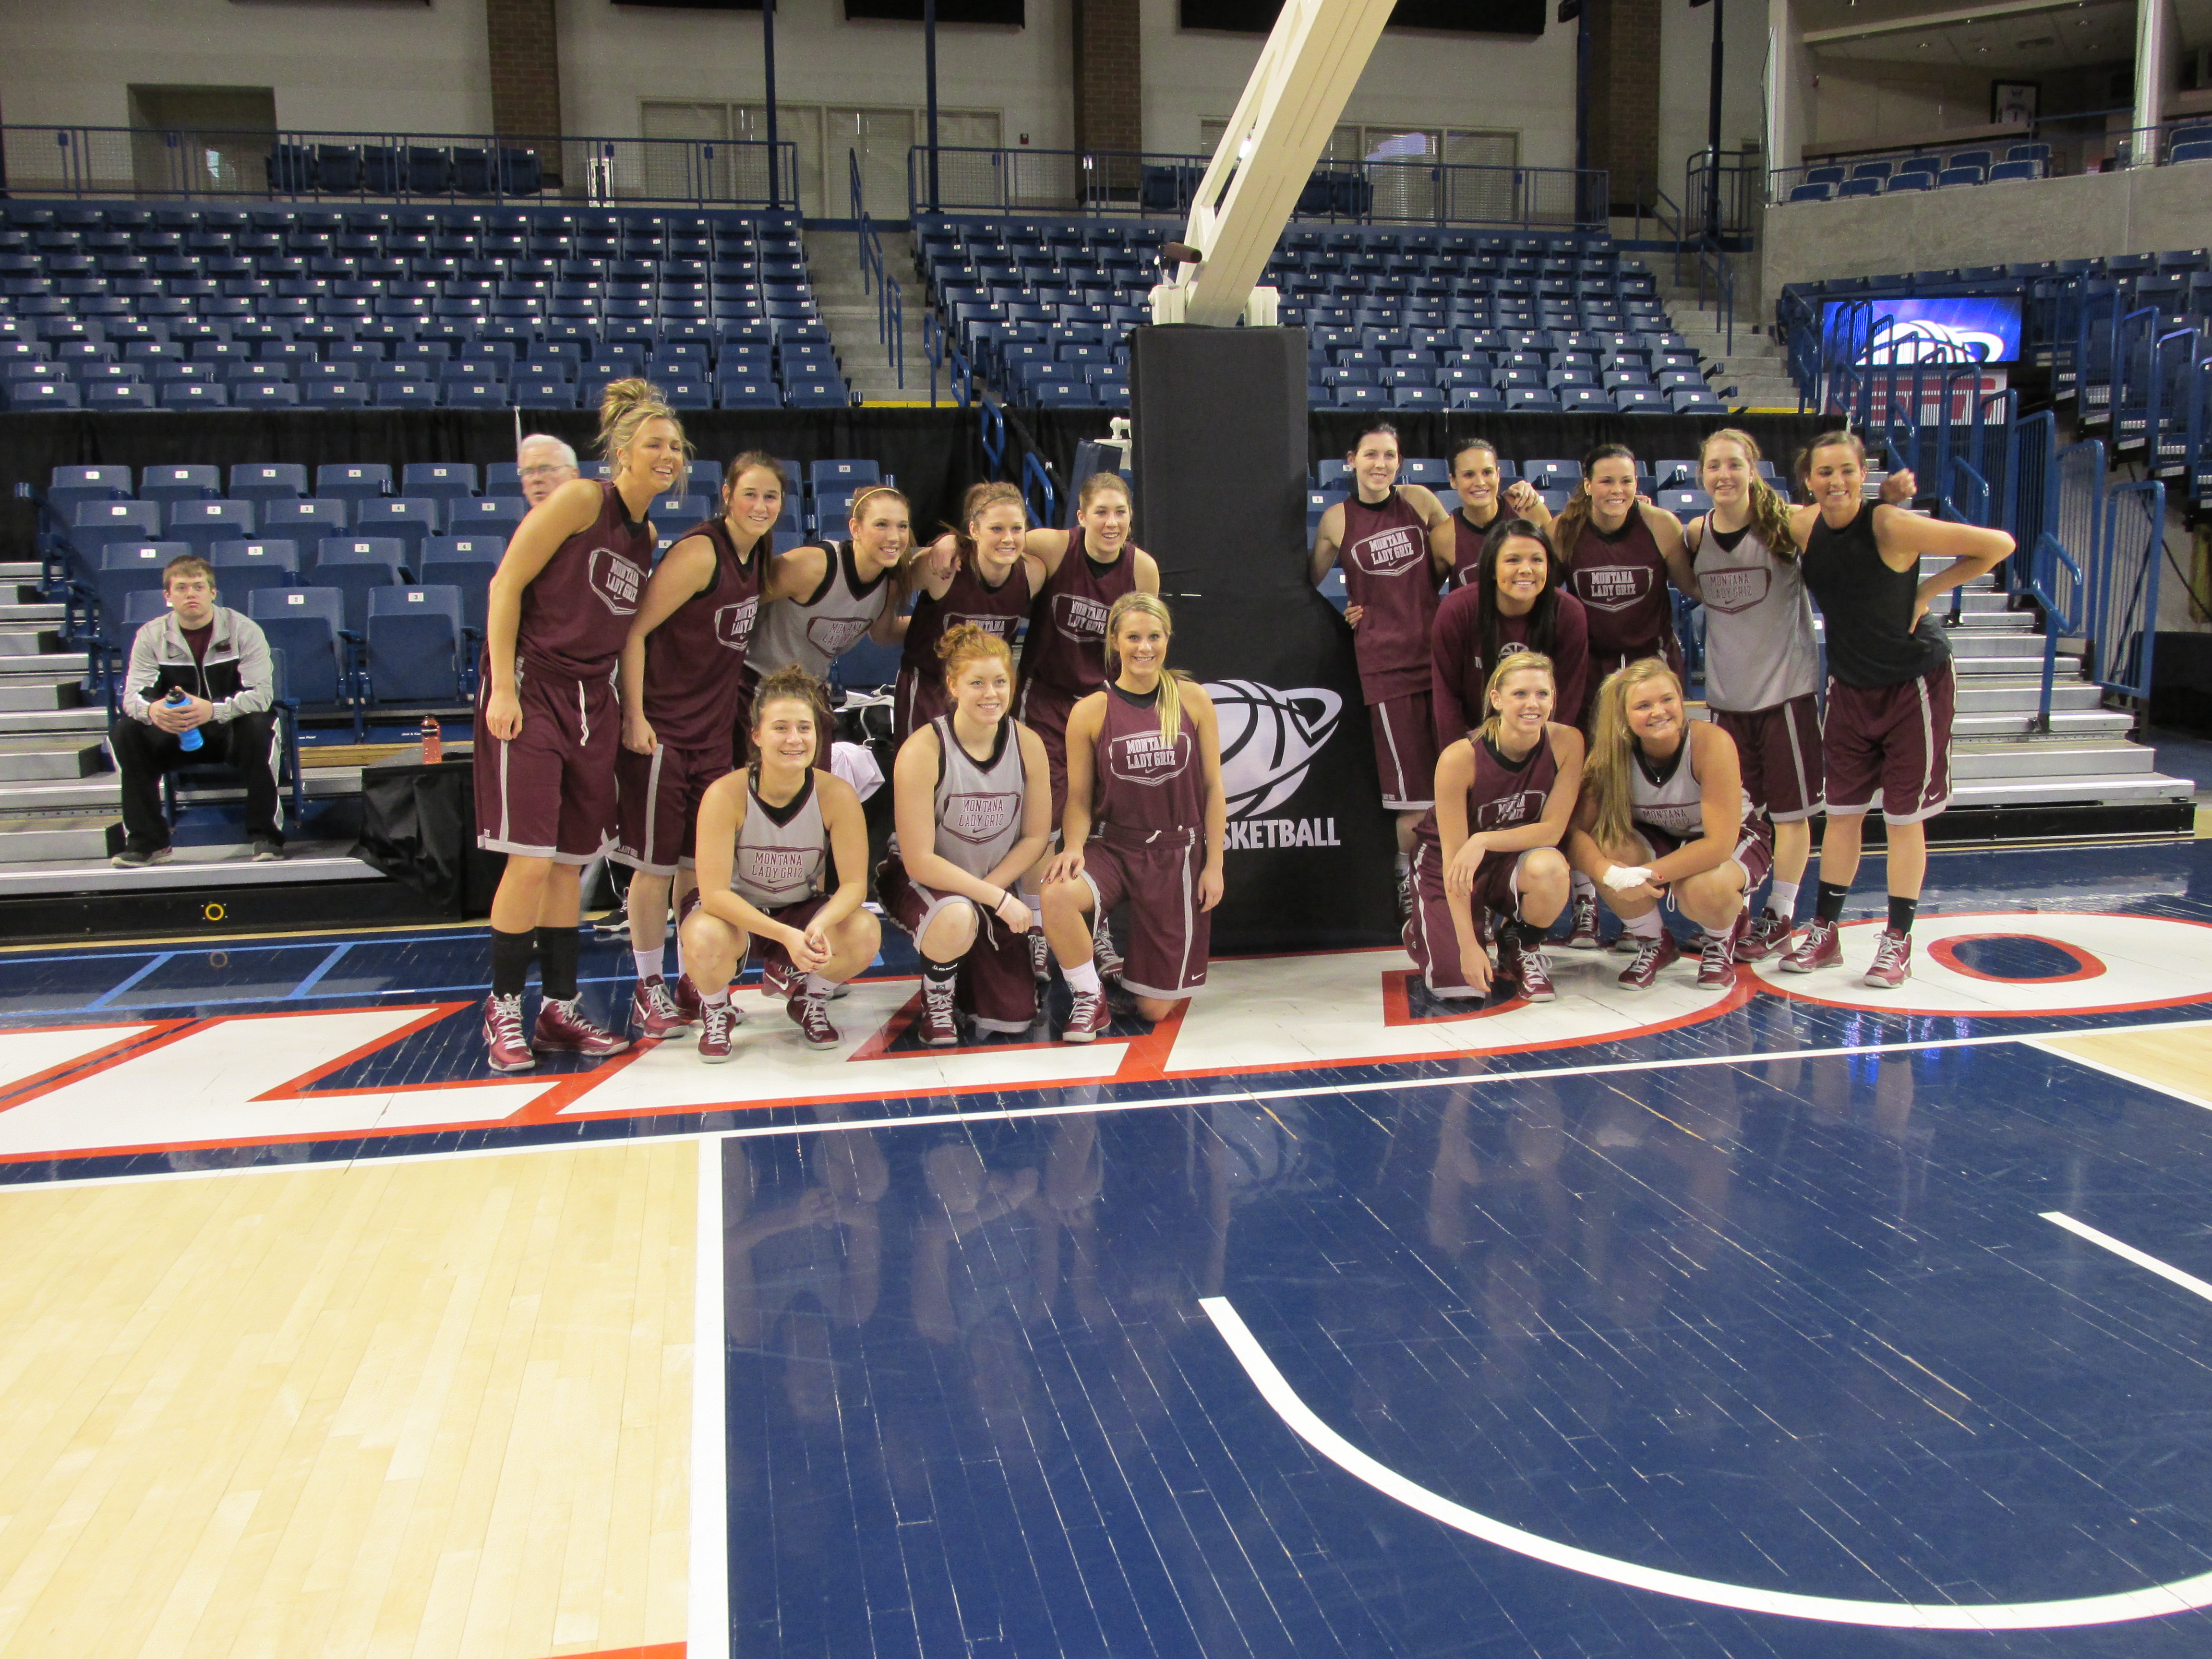 The Lady Griz posed for a picture before practice began.